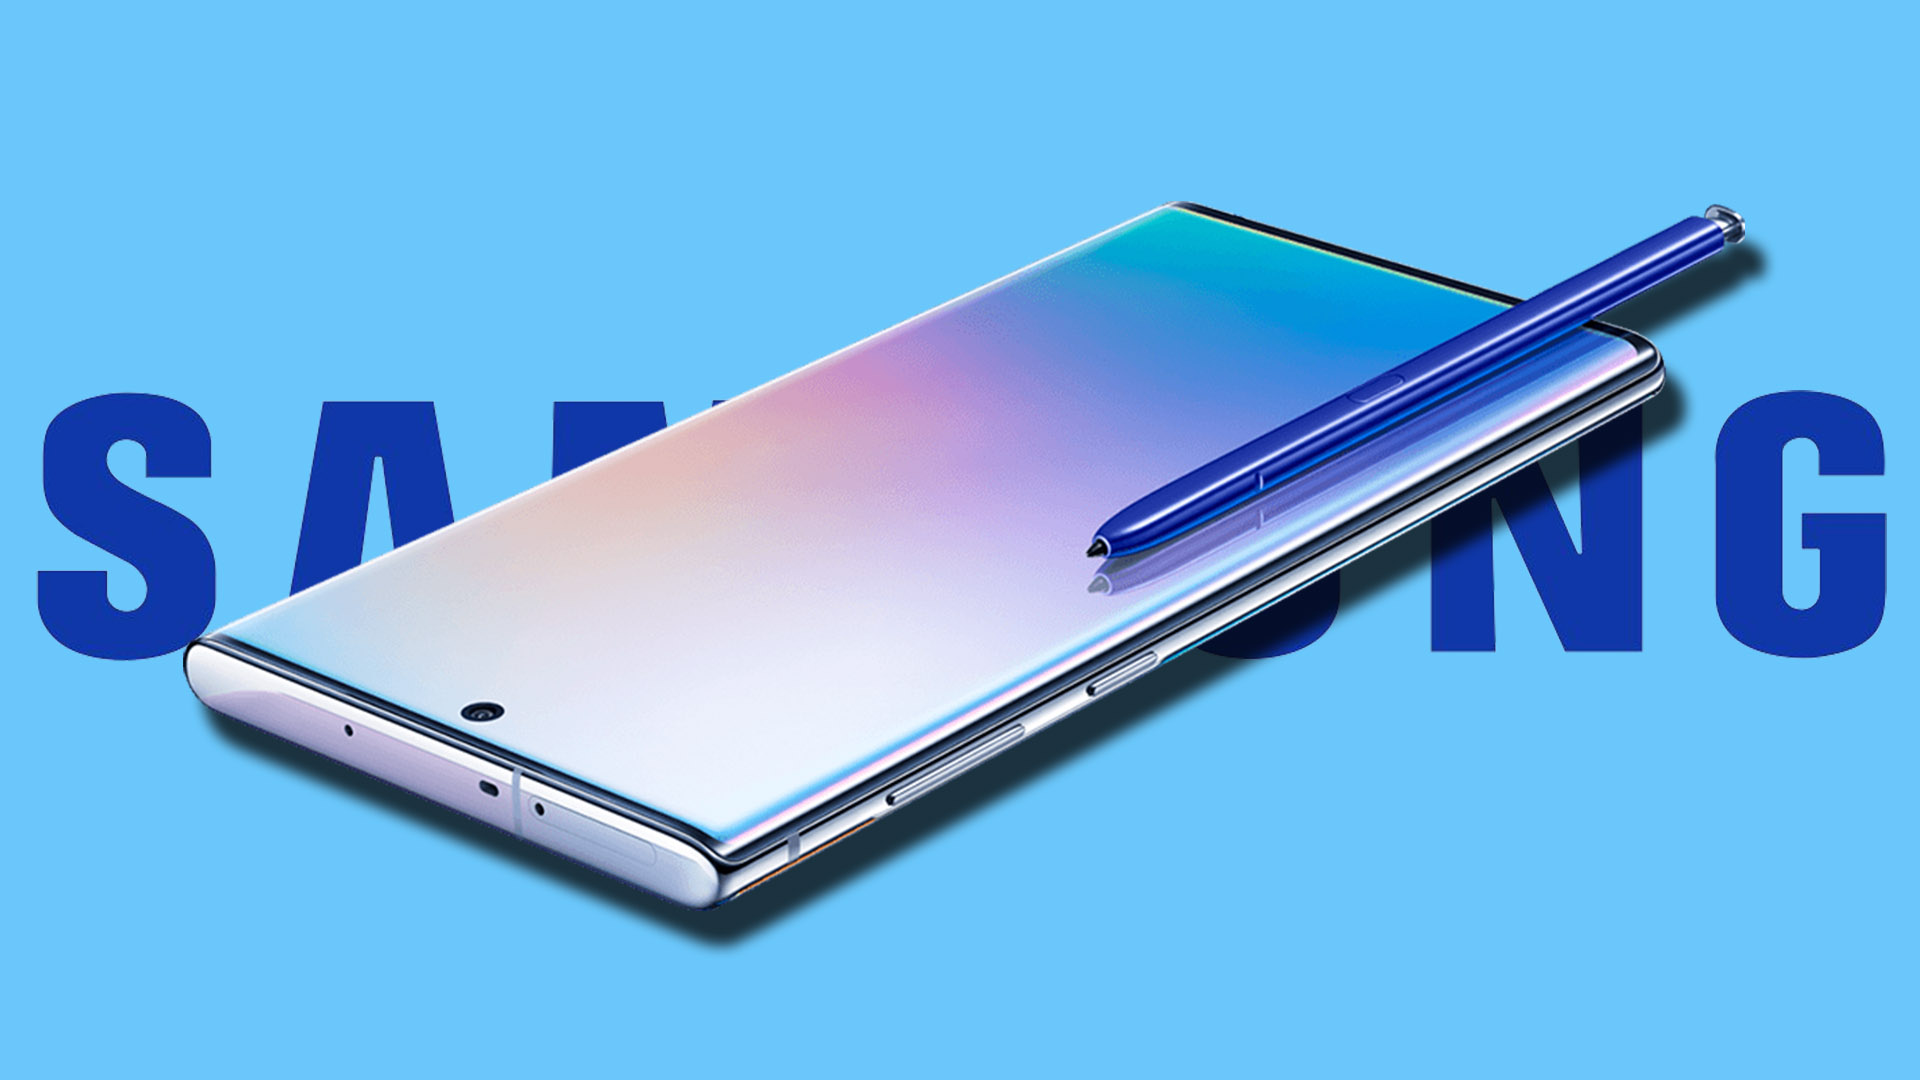 Both Galaxy Note 20 Galaxy Note 20 Plus Could Ship With 16gb Lpddr5 Ram As Standard